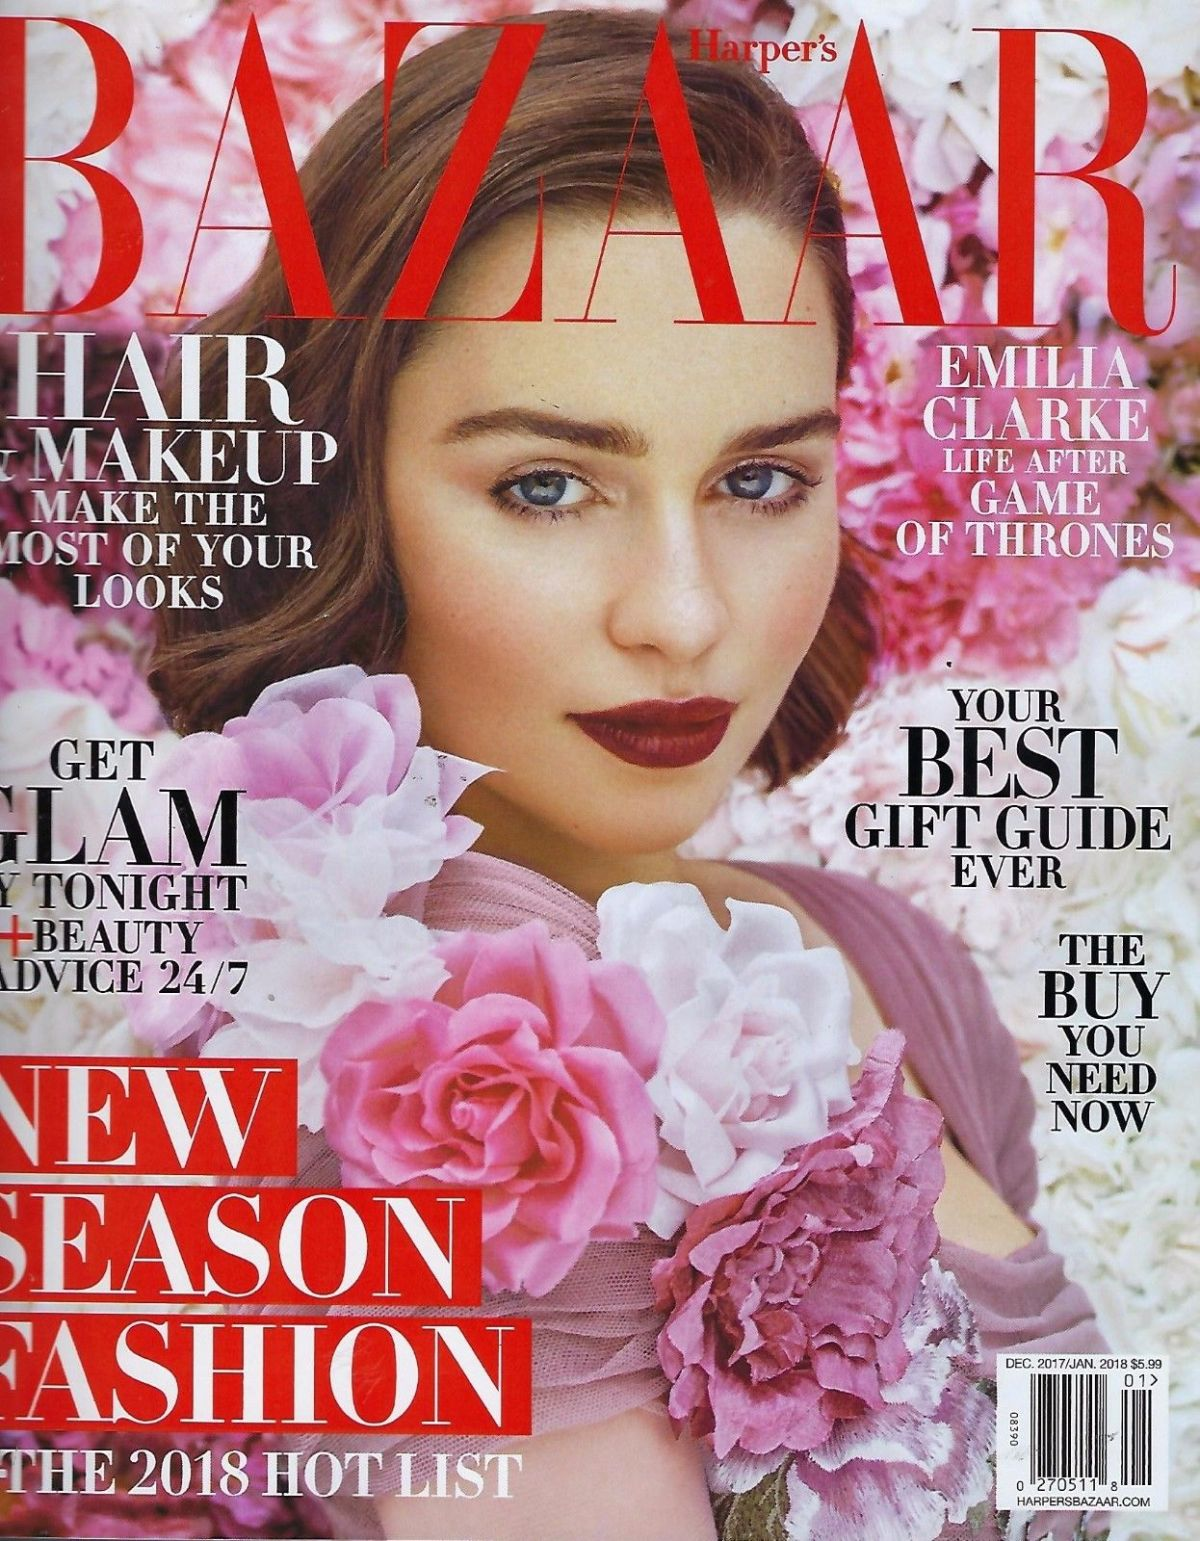 emilia-clarke-on-the-cover-of-harper-s-bazaar-magazine-december-2017-january-2018-0.jpg